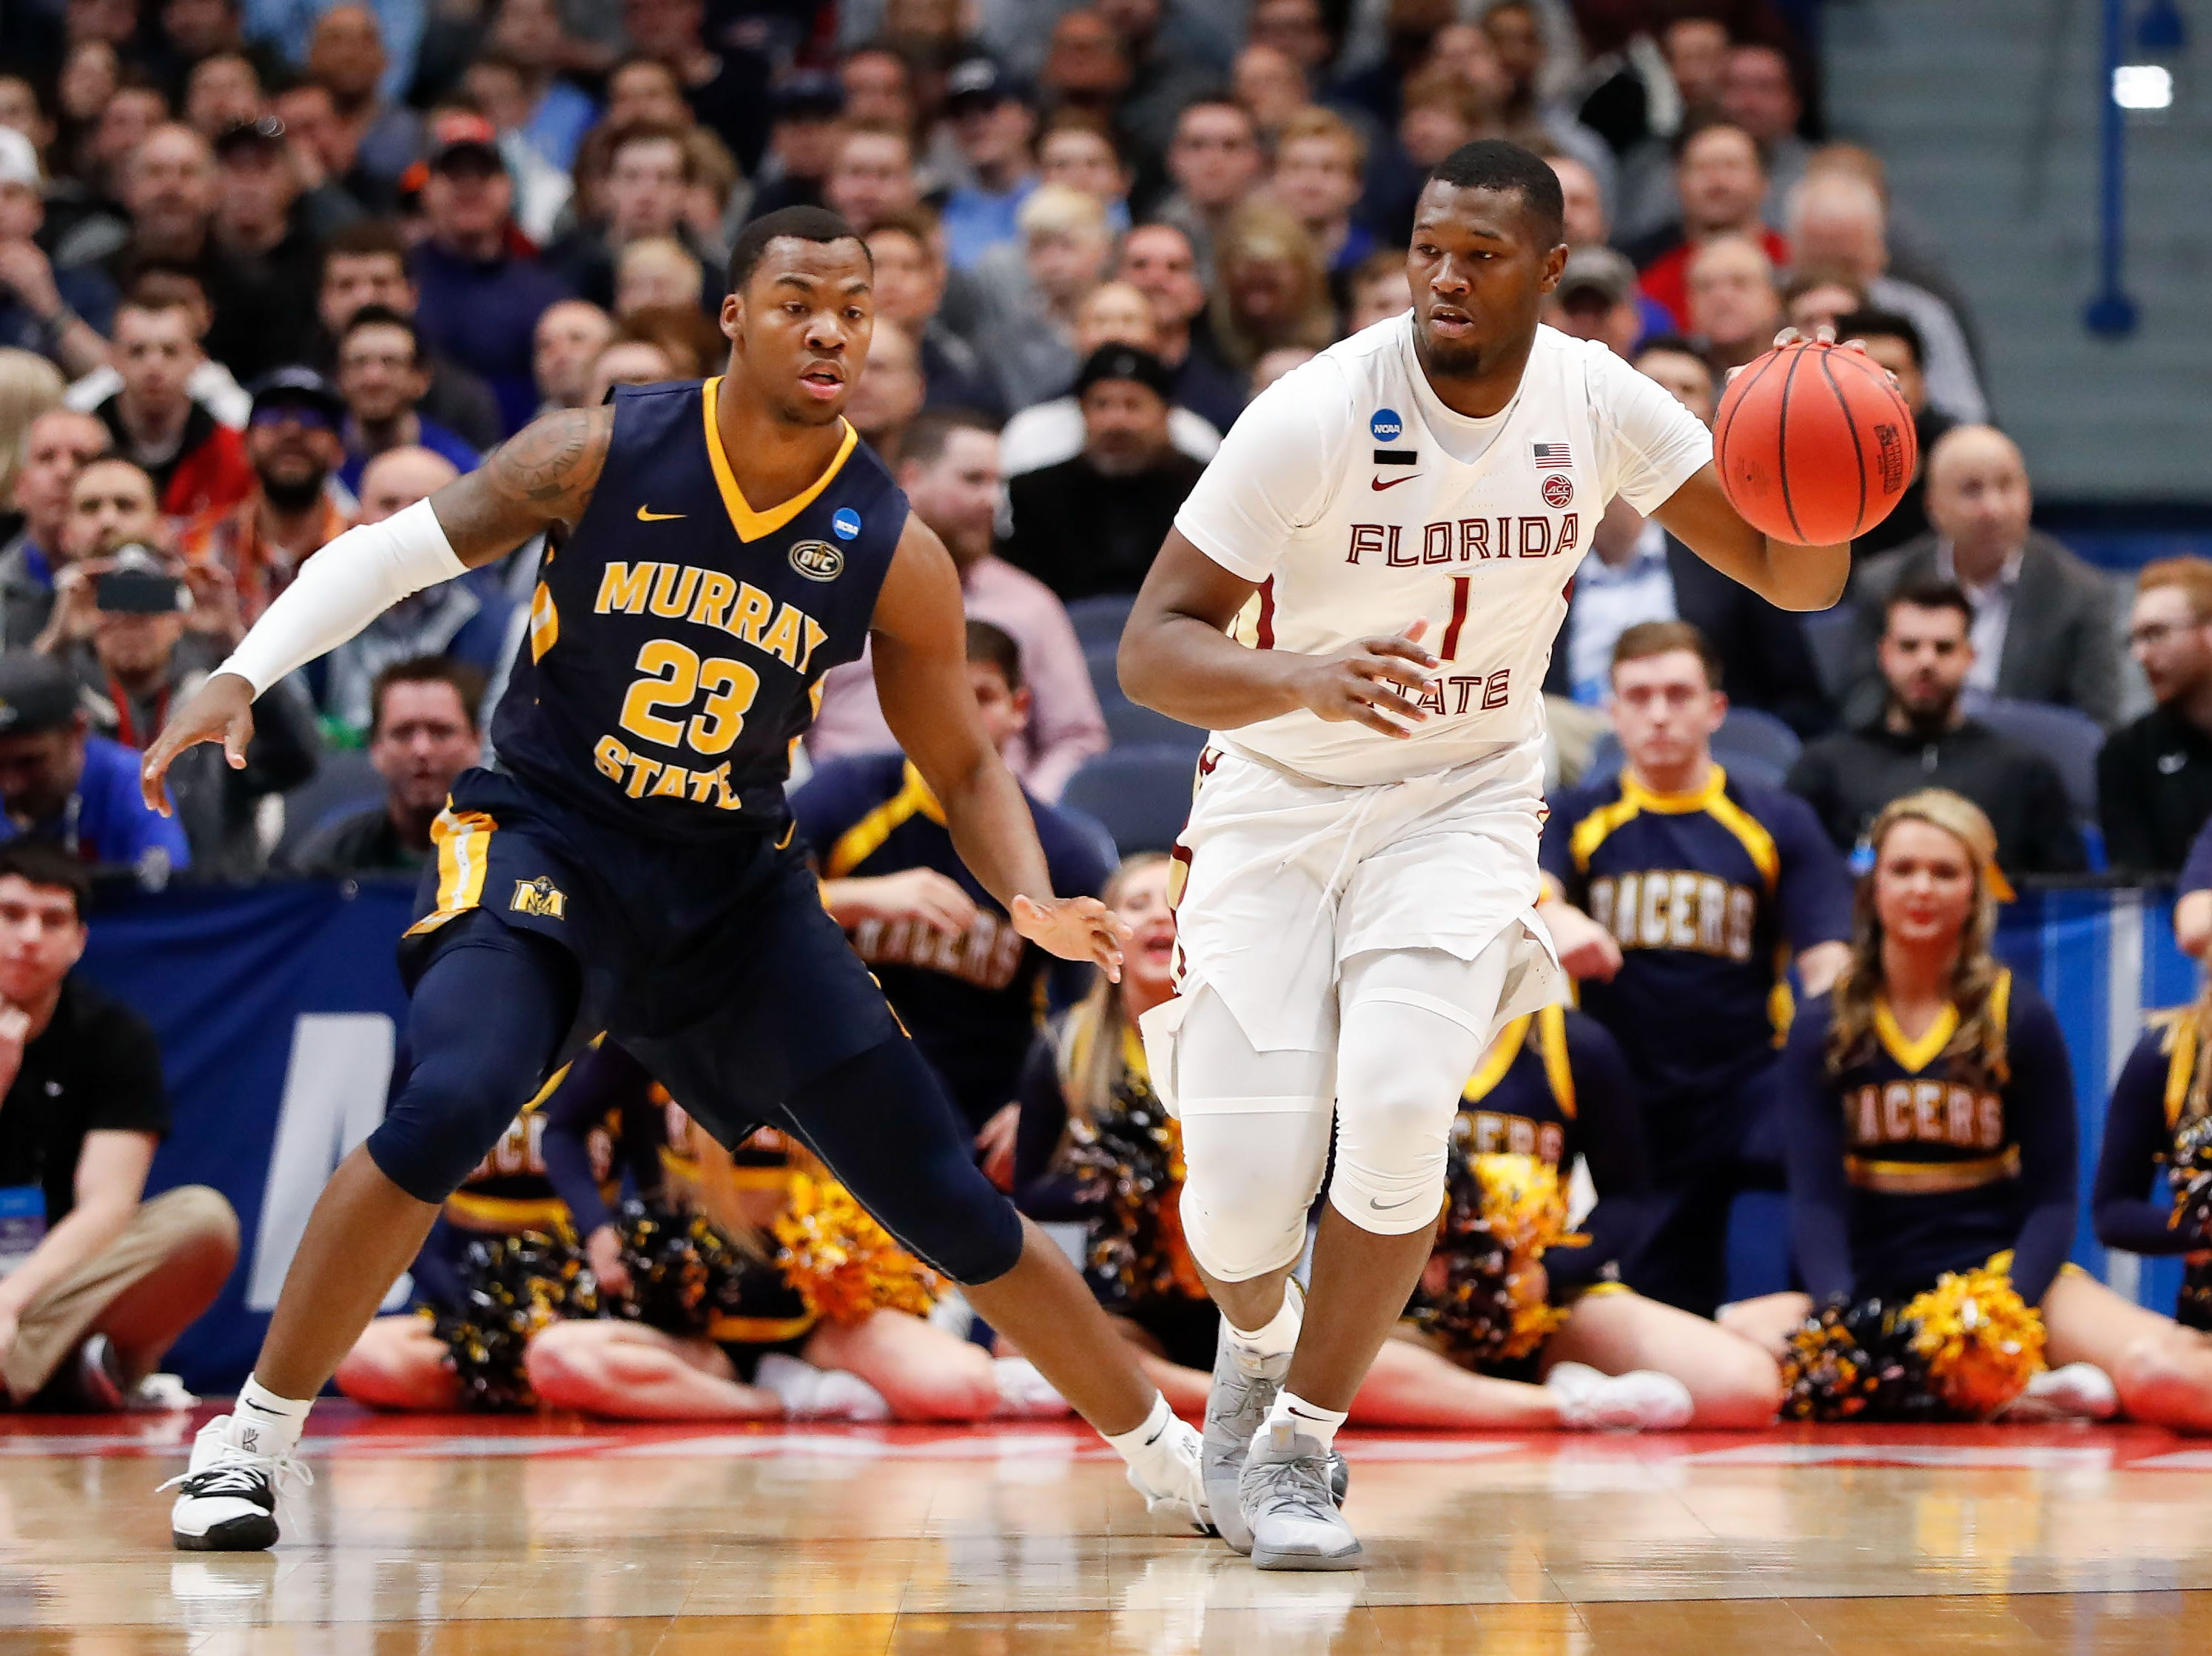 Mar 23, 2019; Hartford, CT, USA; Florida State Seminoles forward Raiquan Gray (1) controls the ball in front of Murray State Racers forward KJ Williams (23) during the first half of a game in the second round of the 2019 NCAA Tournament at XL Center. Mandatory Credit: David Butler II-USA TODAY Sports